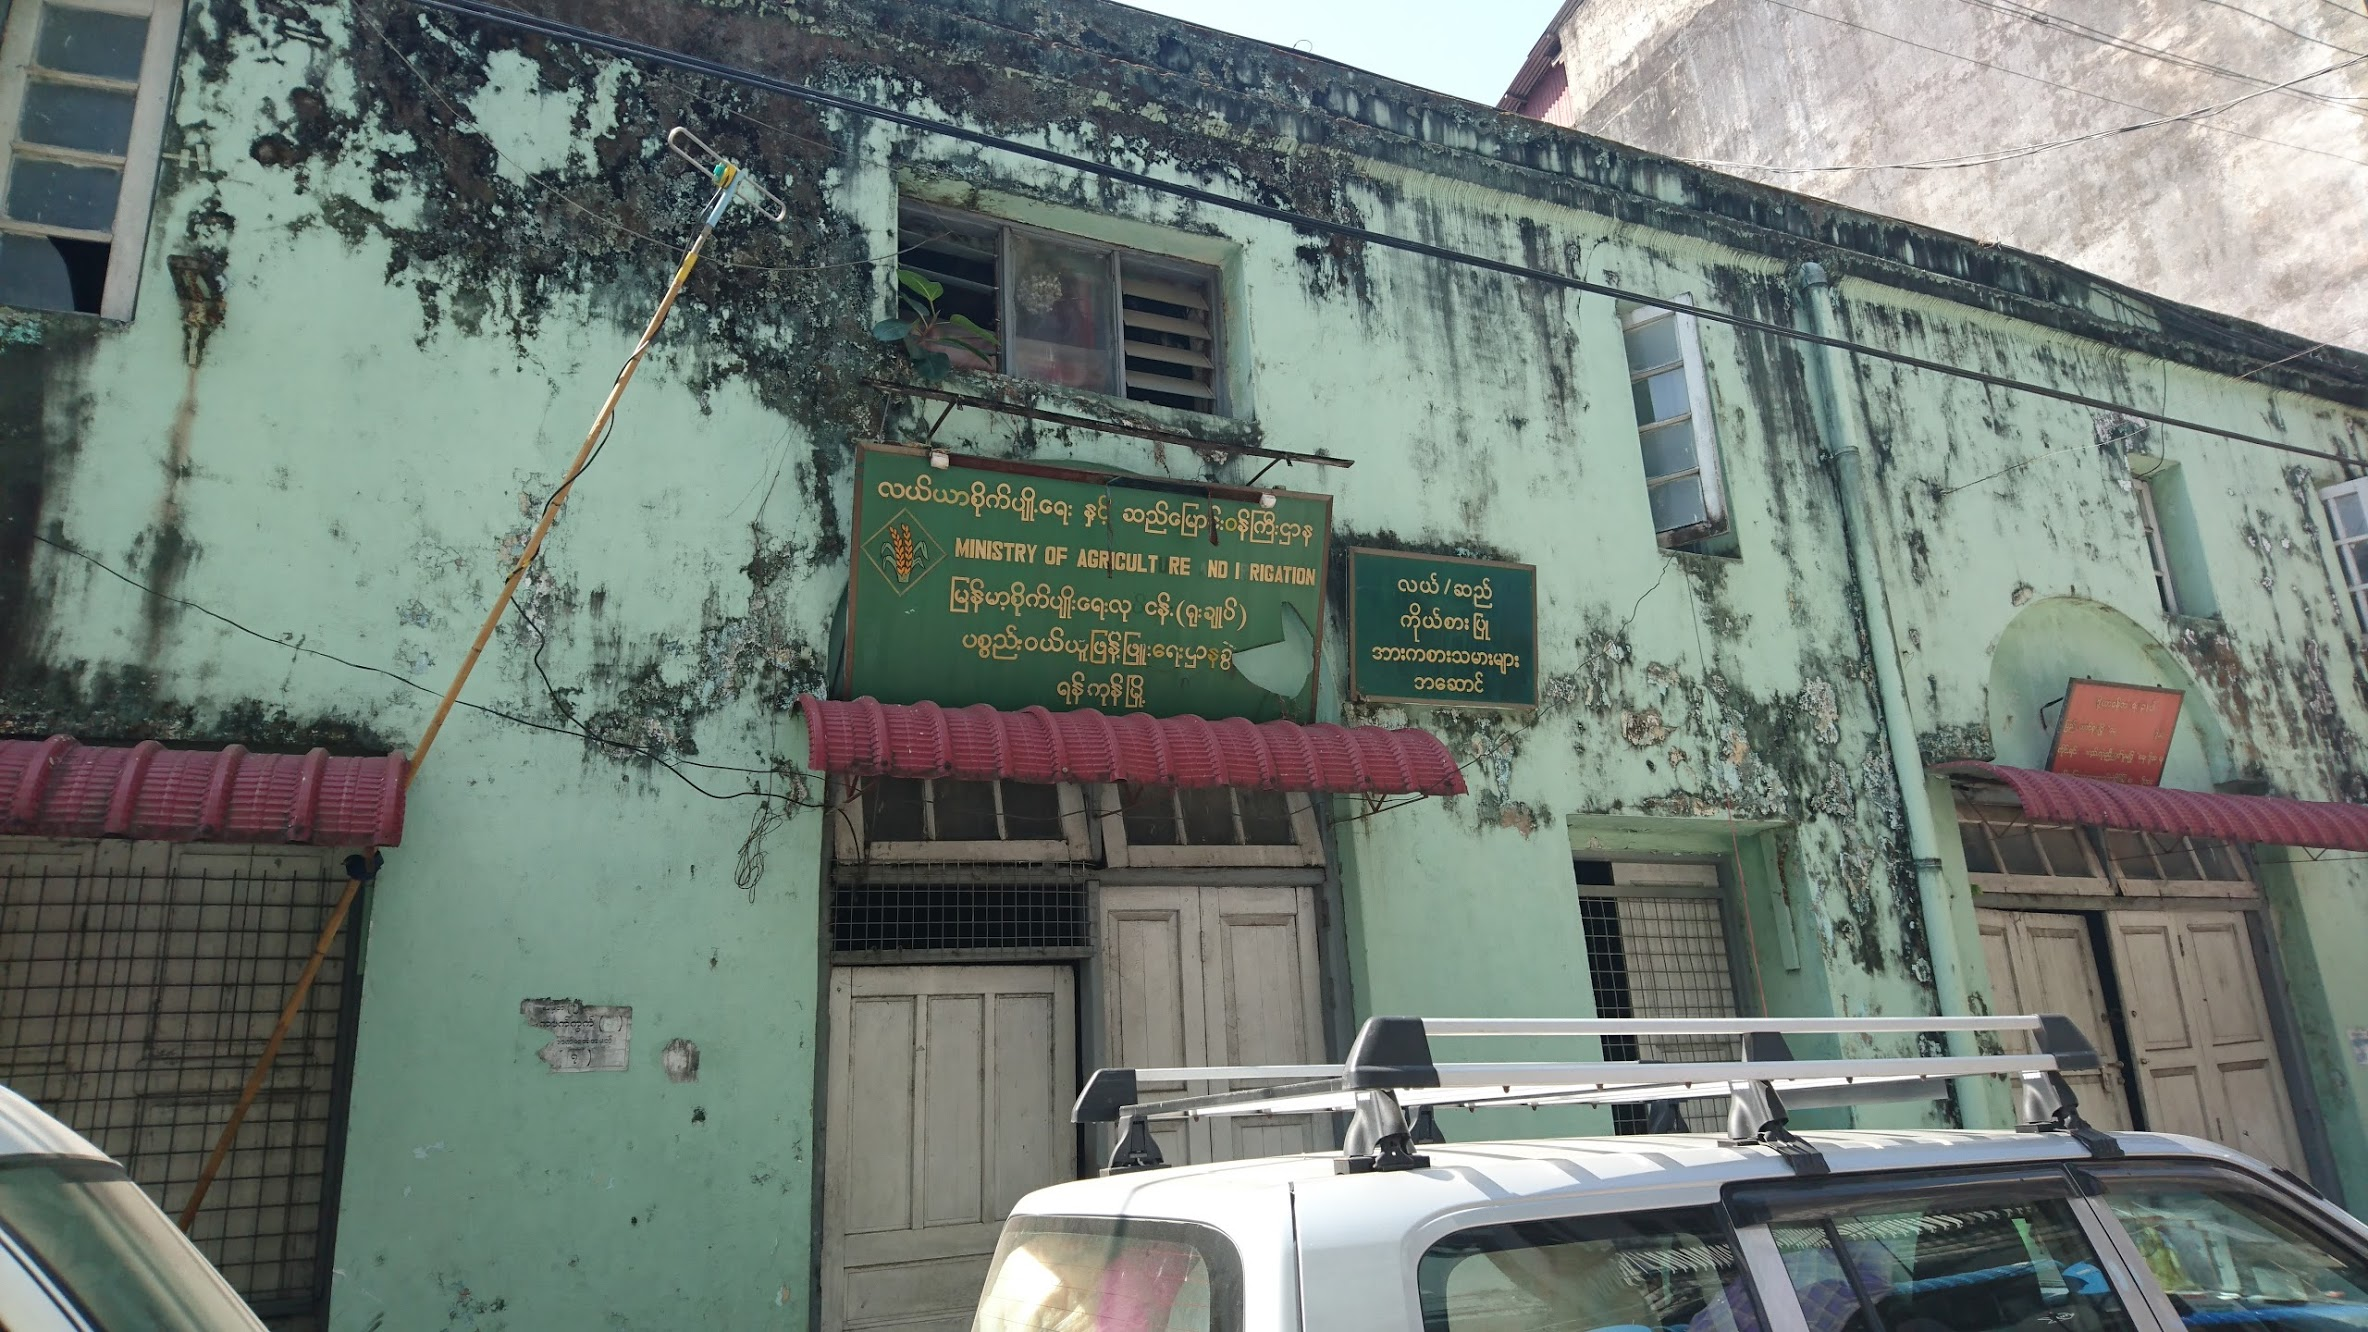 Another ramshackle government building.